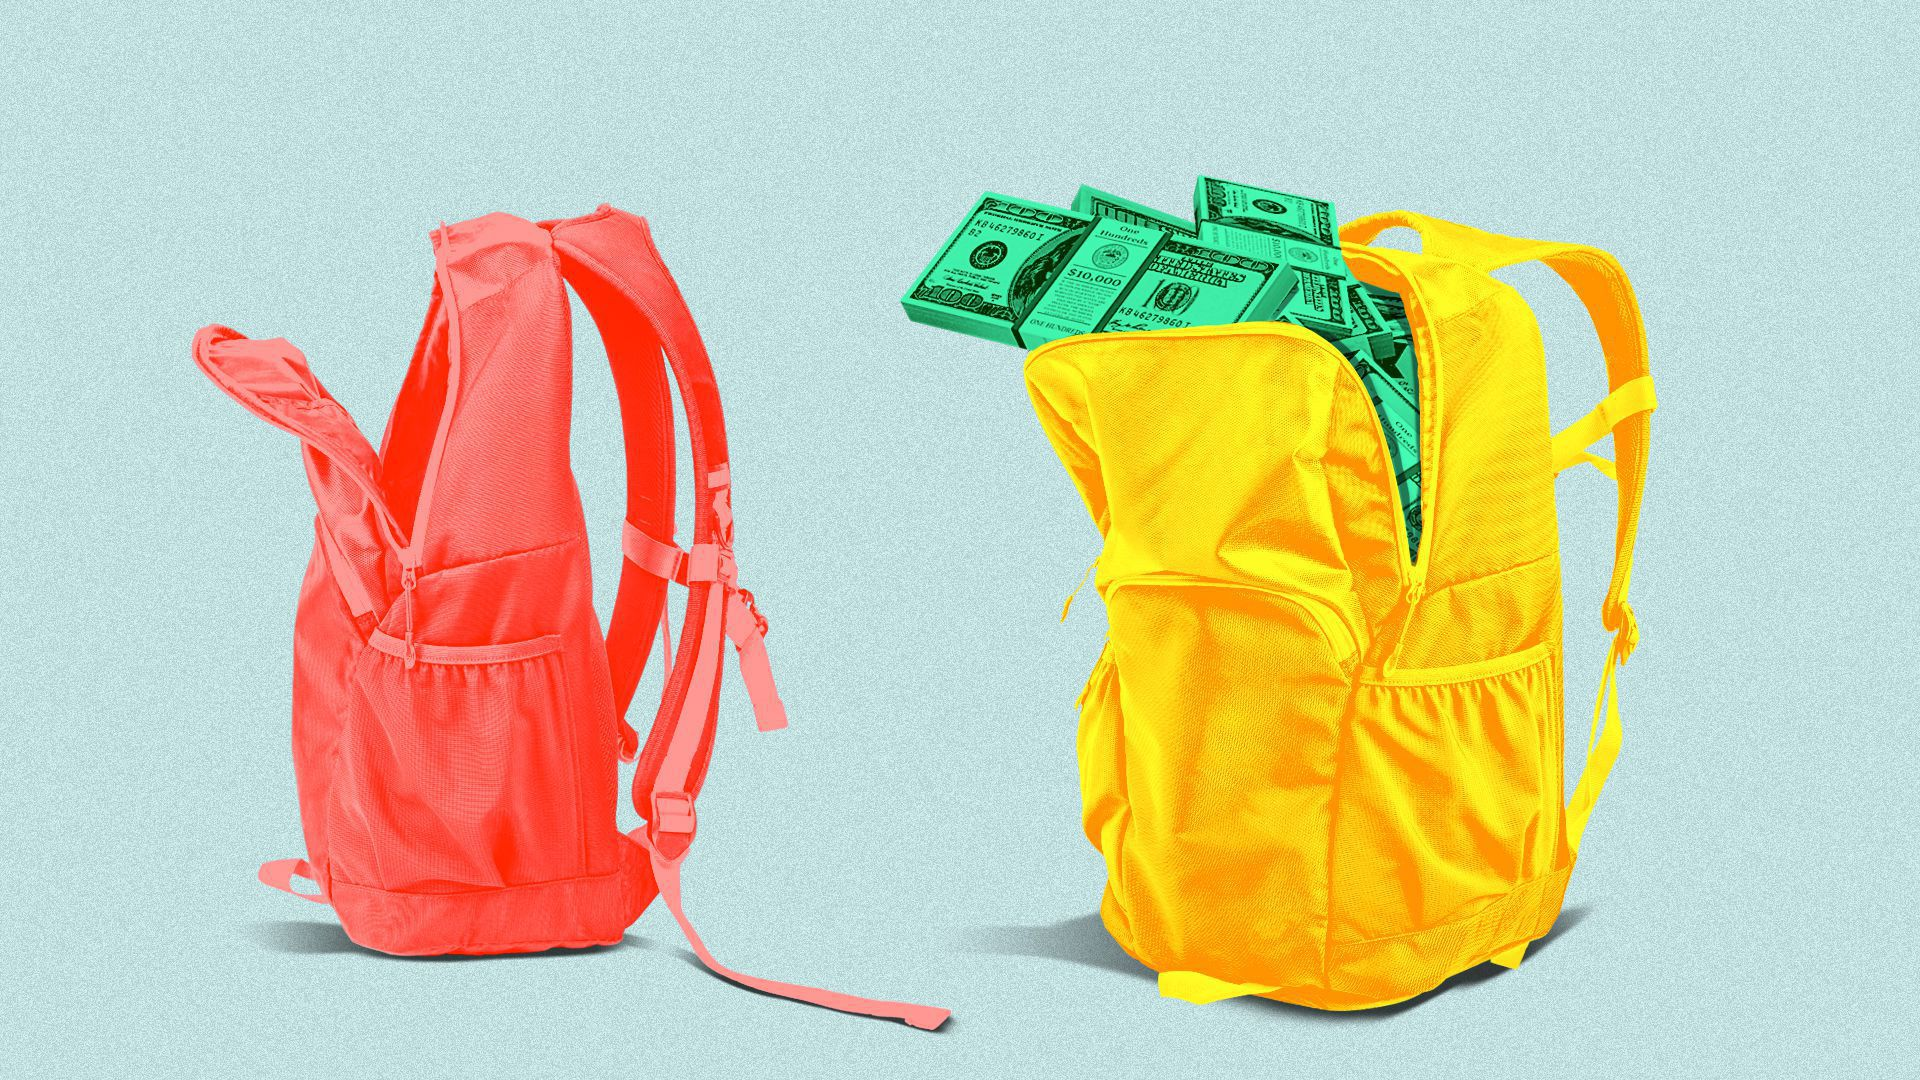 Two backpacks, one stuffed with cash.